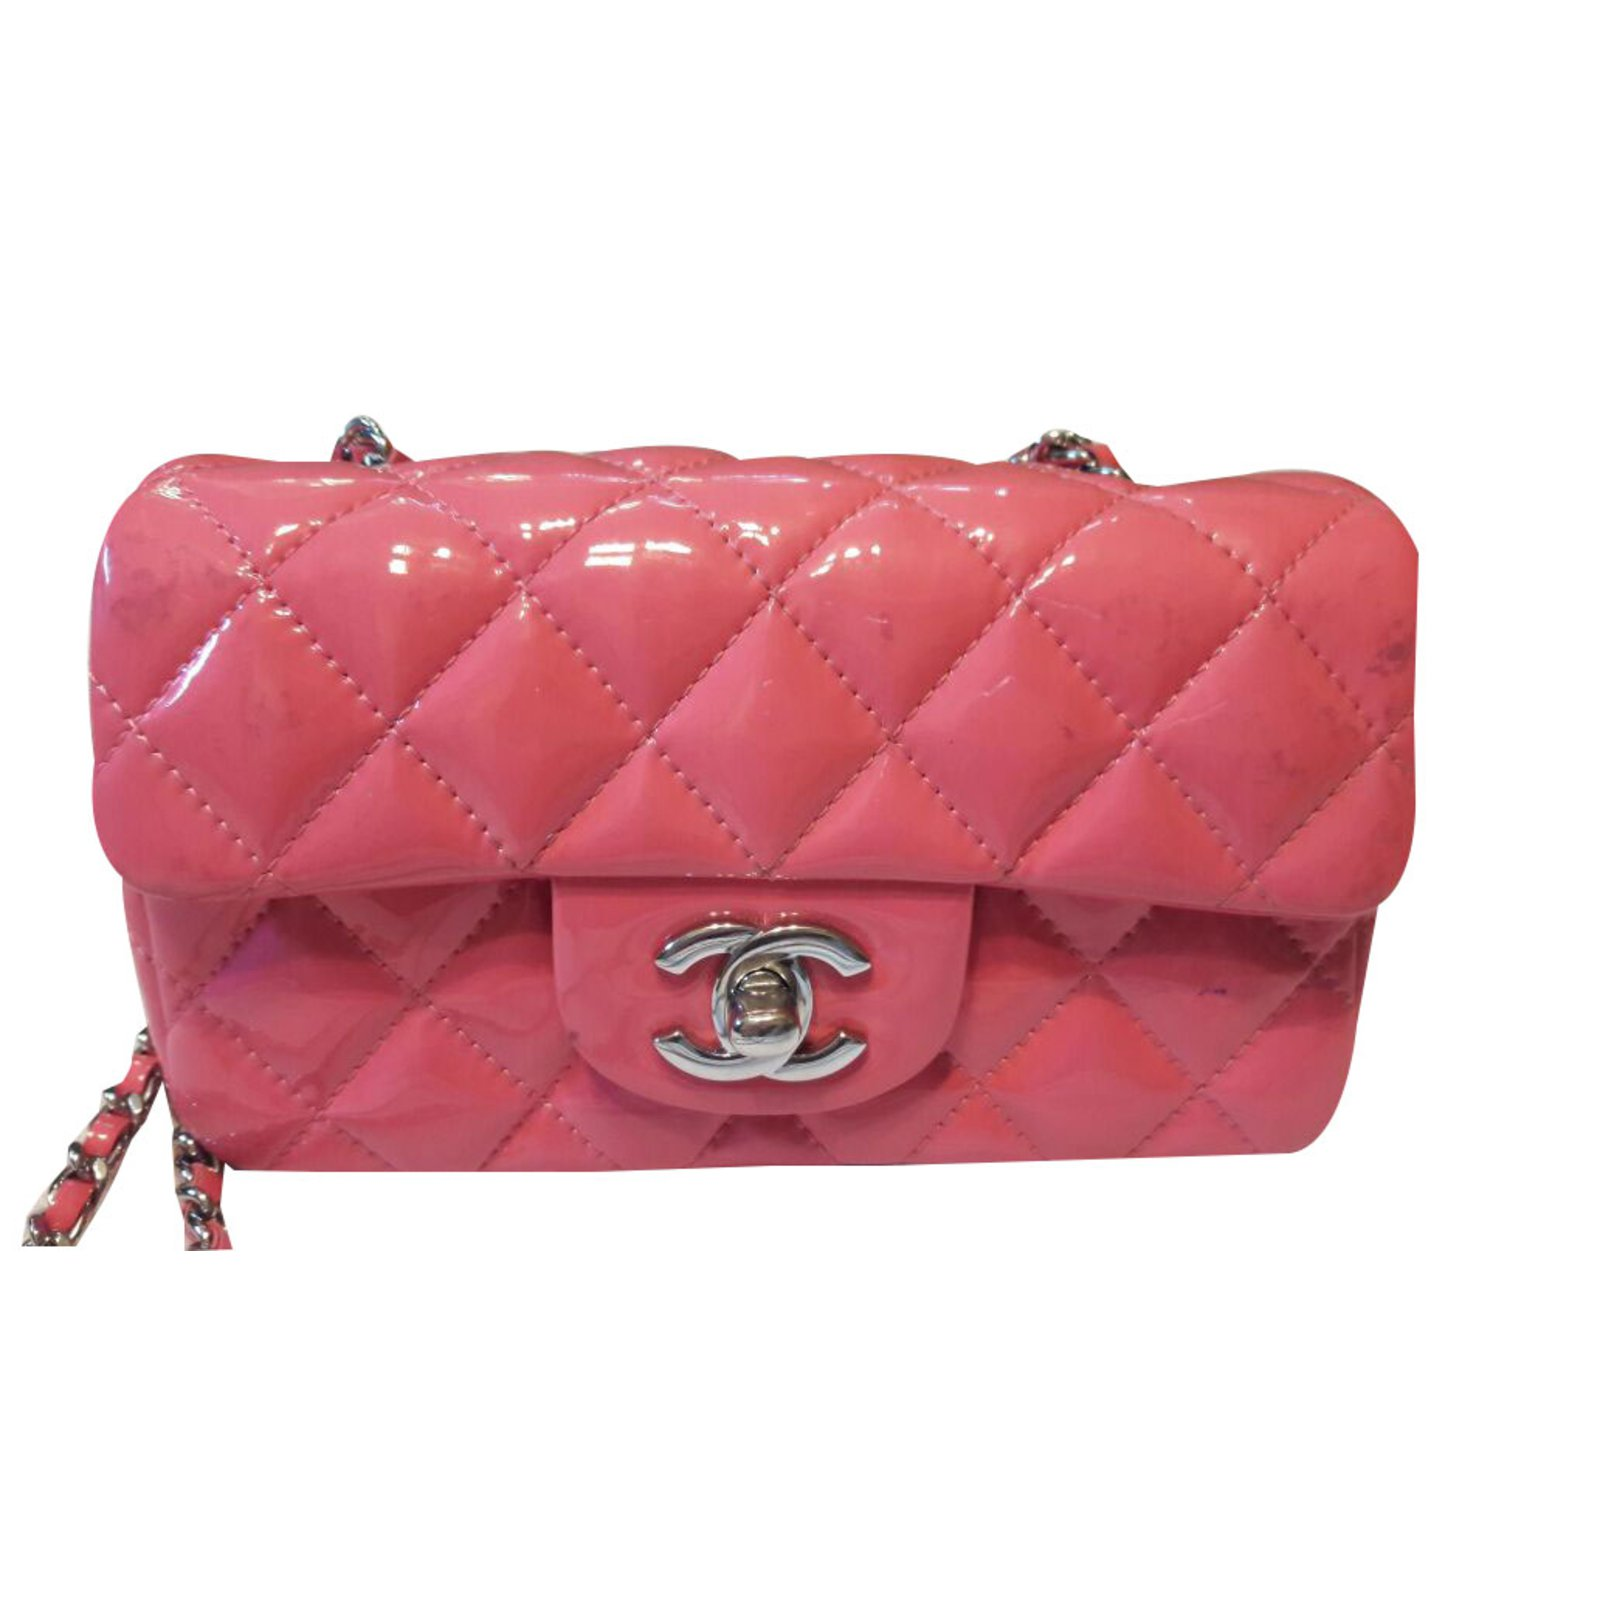 0a47d2a1c742 Chanel Mini classic flap bag Handbags Patent leather Pink ref.47499 ...